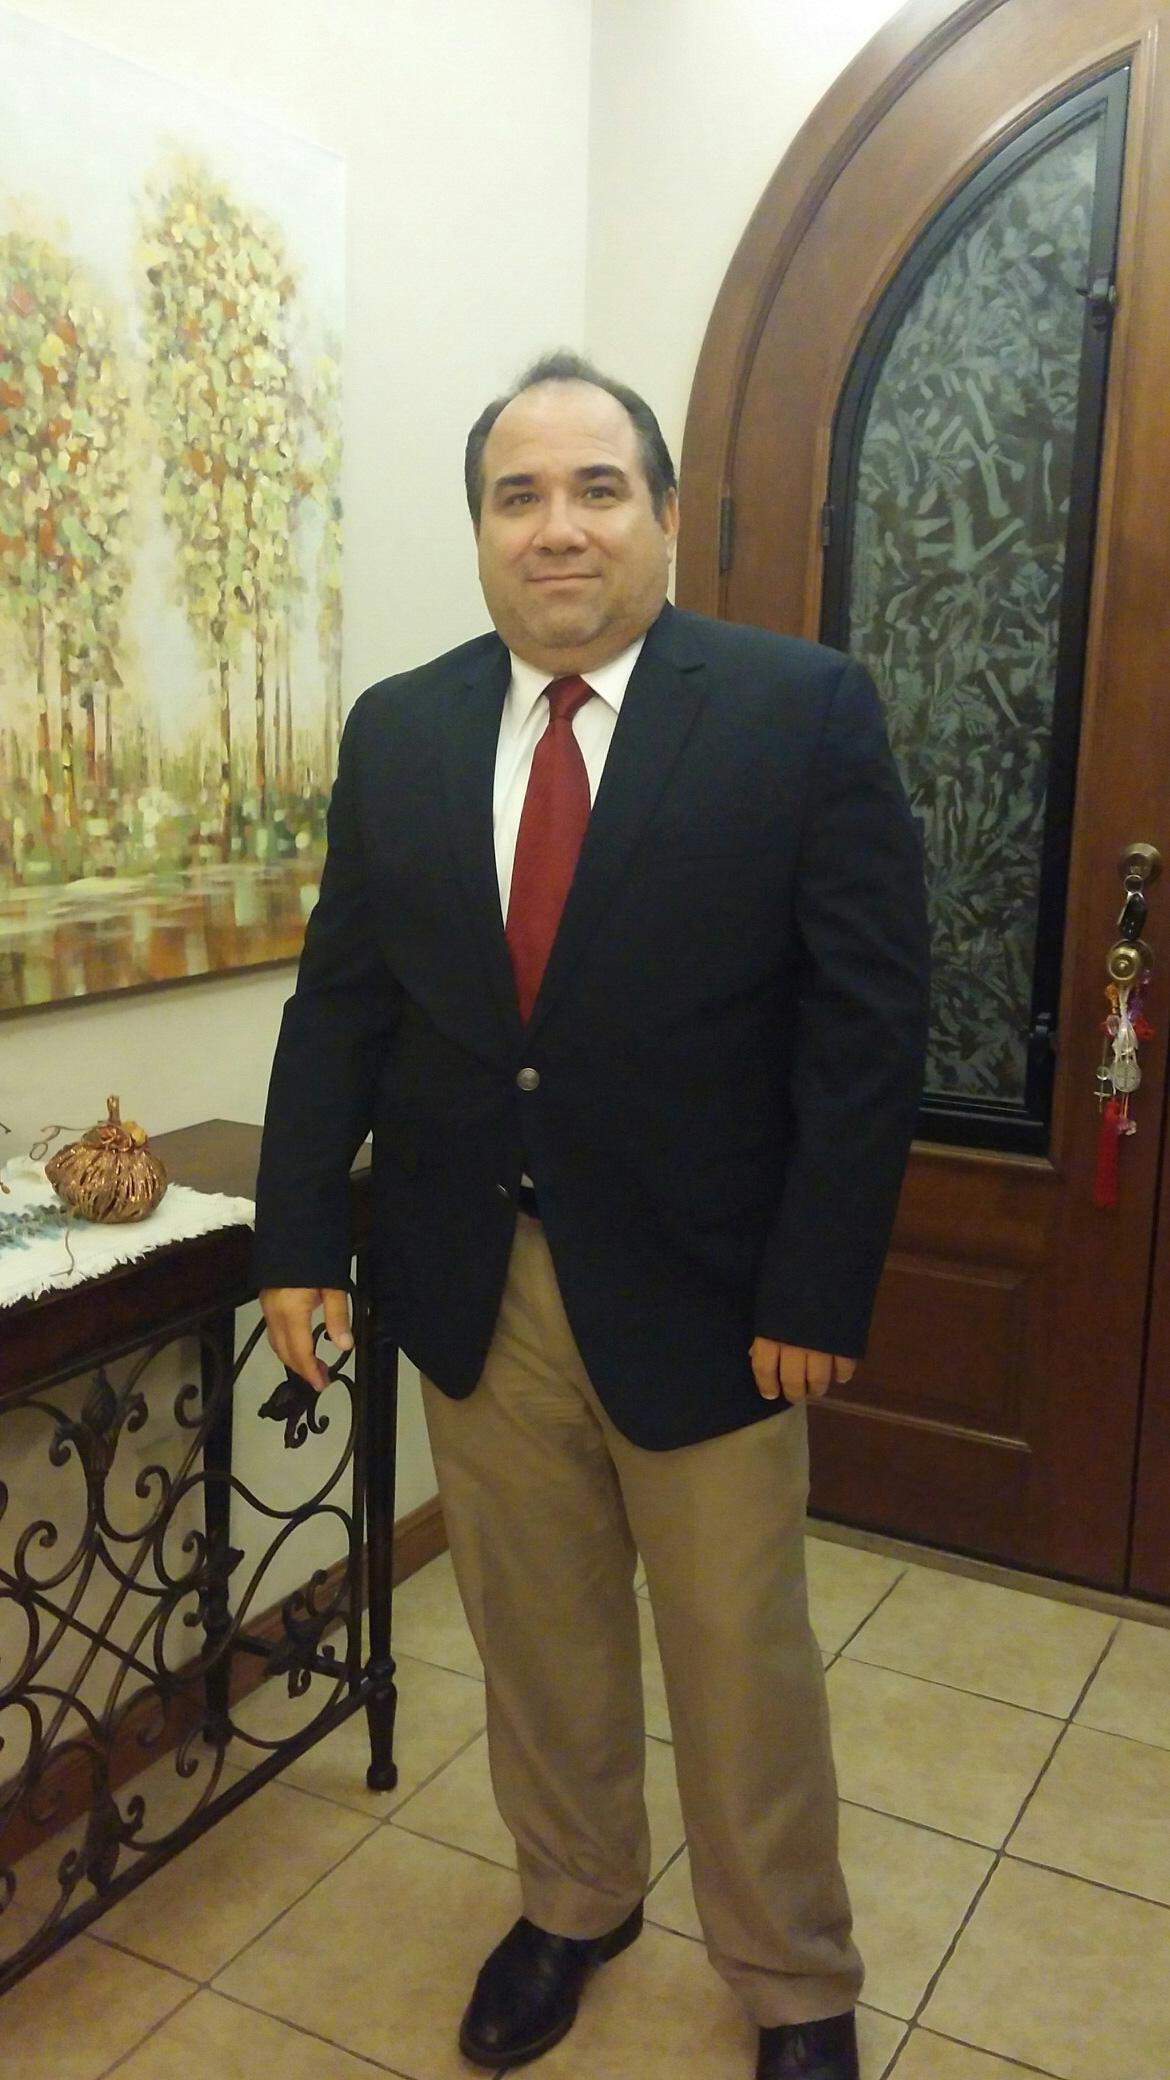 Real Estate Agents in TX Edinburg 78541 A & D Realty Services 108 N Jackson Rd Ste 27 (956)517-2740